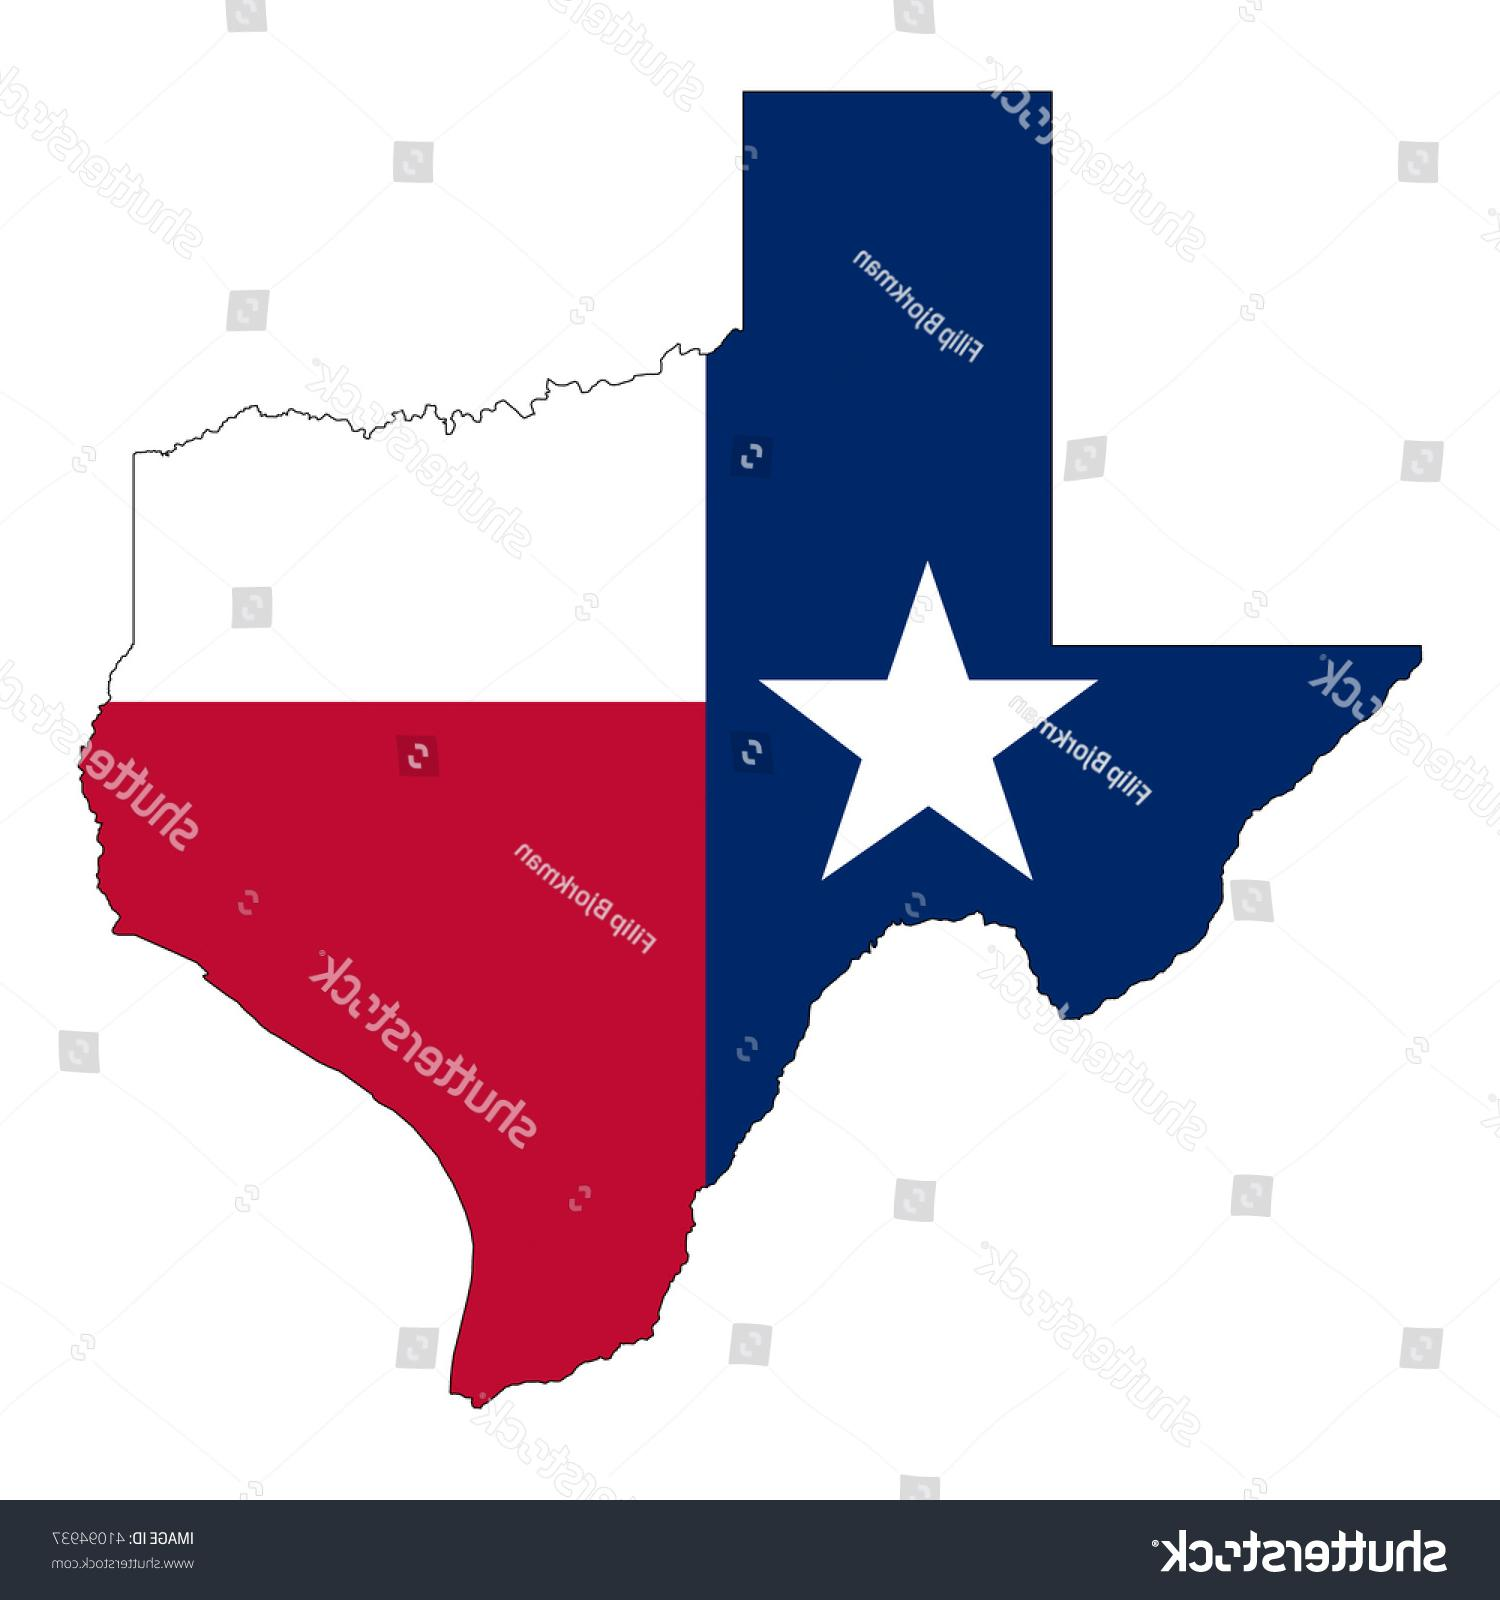 1500x1600 Top Stock Vector The Shape Of Texas Flag Inside Map Cdr